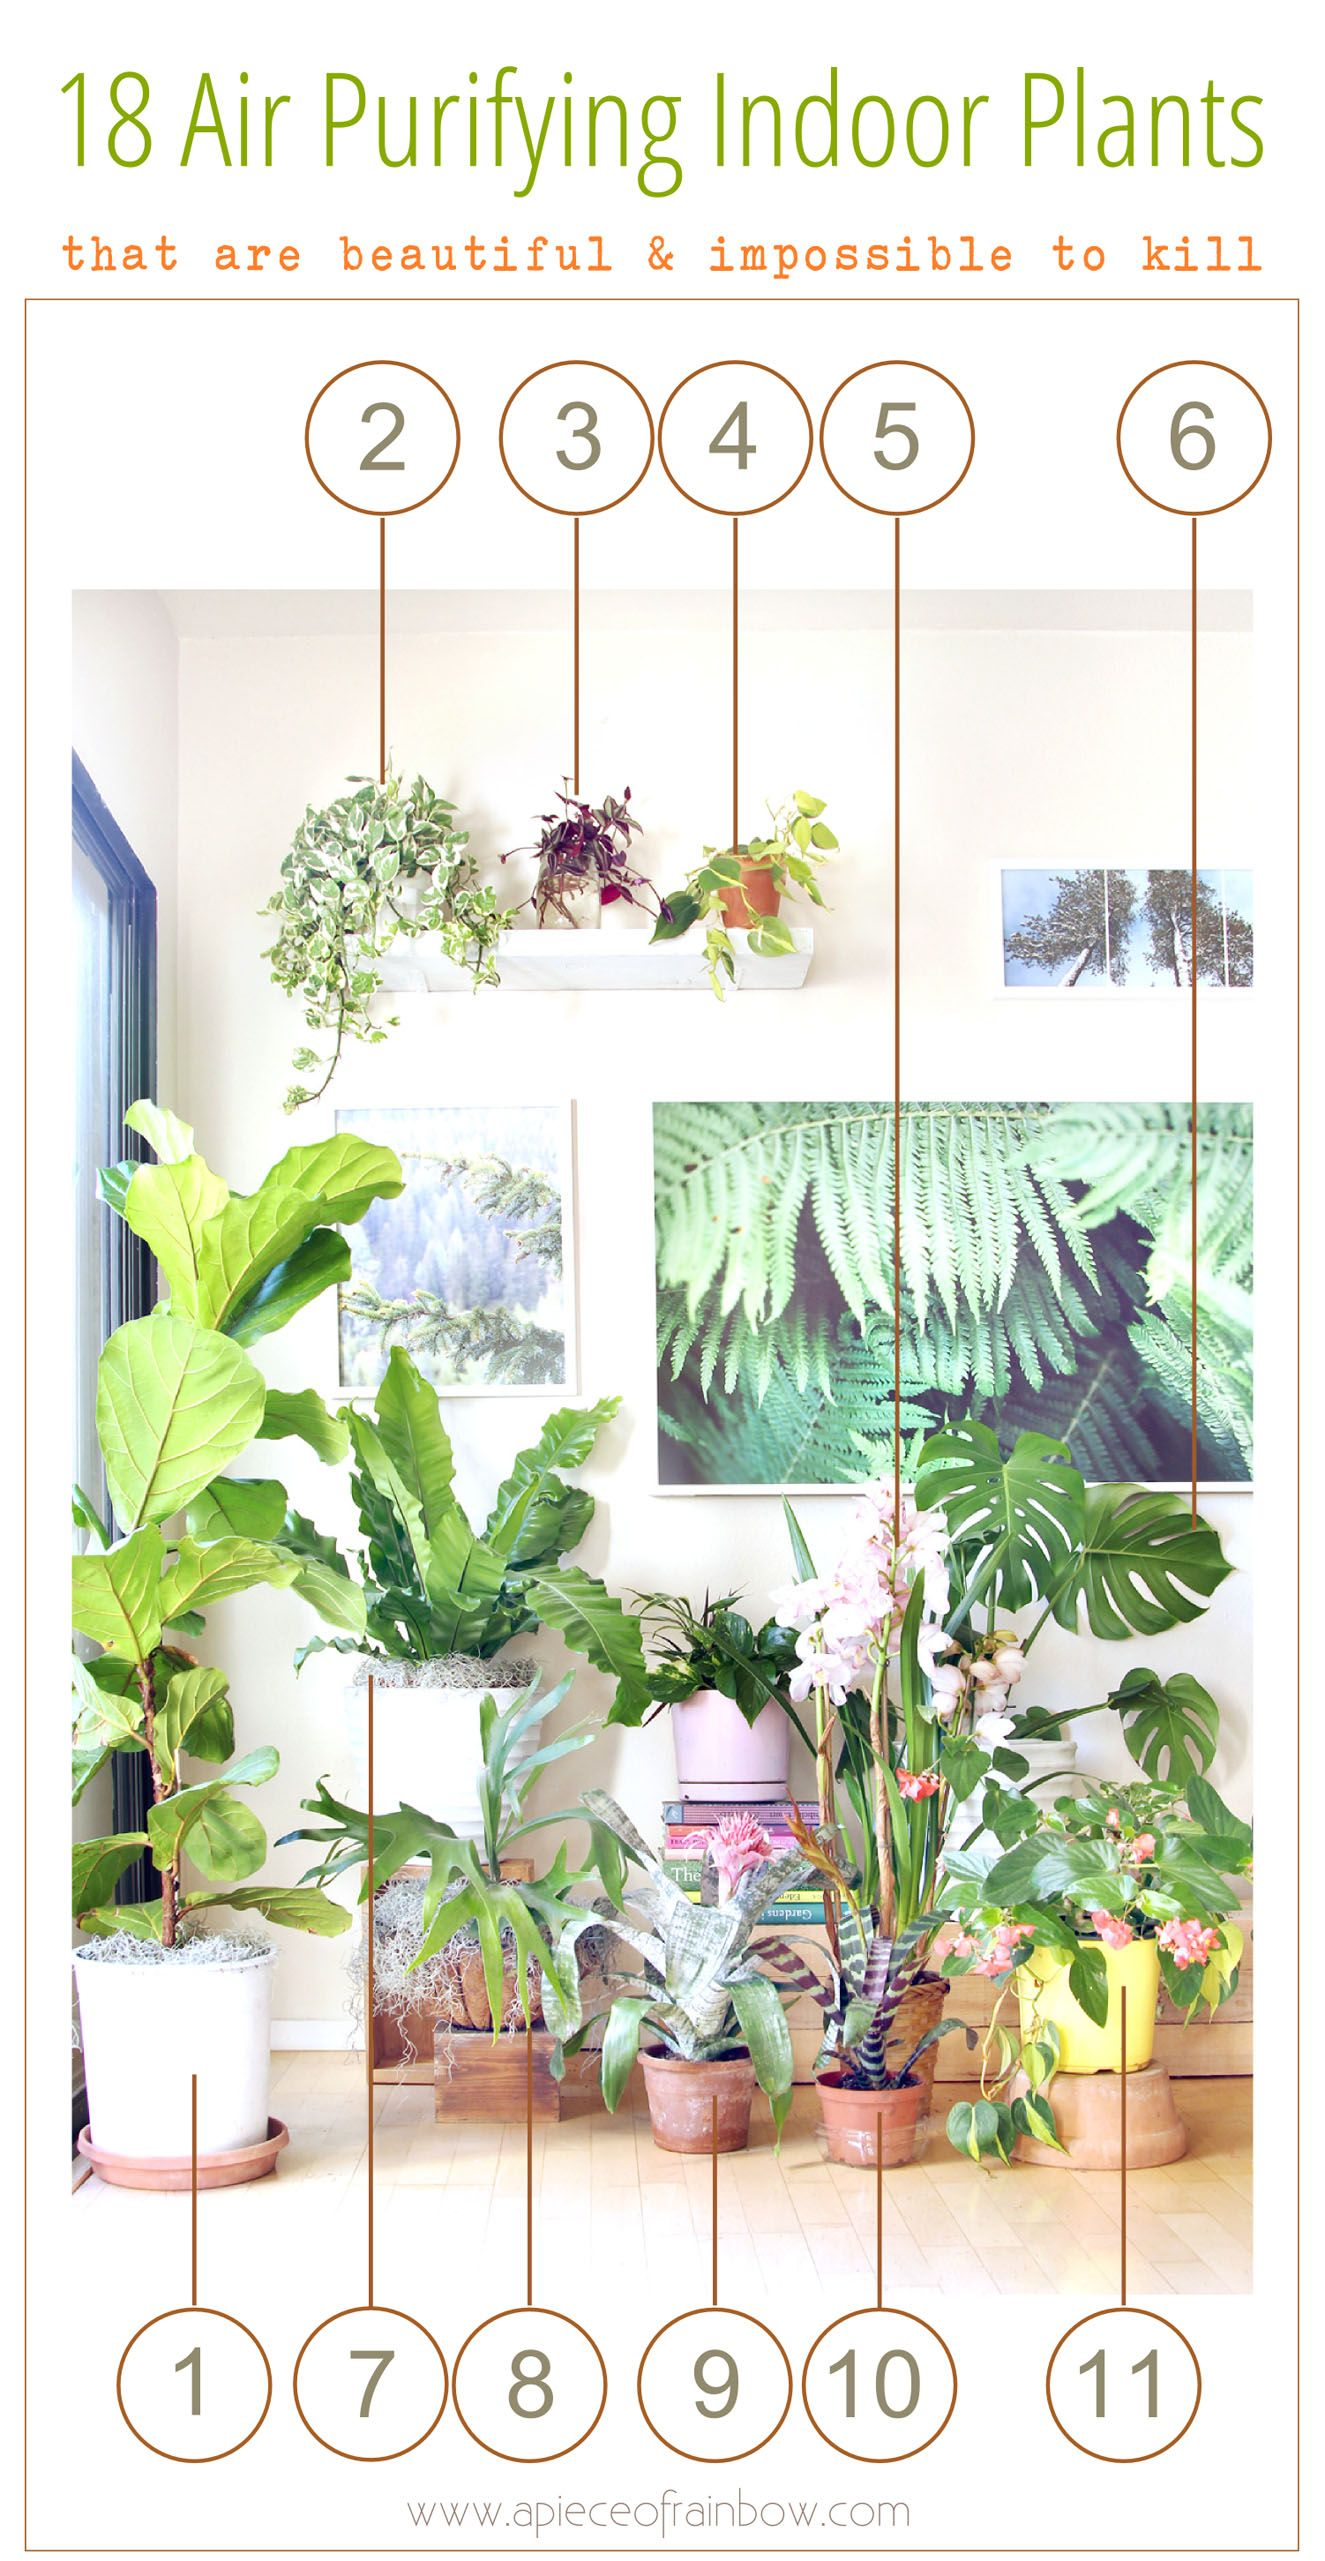 Indoor Garden And Lighting 18 most beautiful indoor plants 5 easy care tips flowering come tour our happy indoor garden a list of 18 best indoor plants plus 5 workwithnaturefo